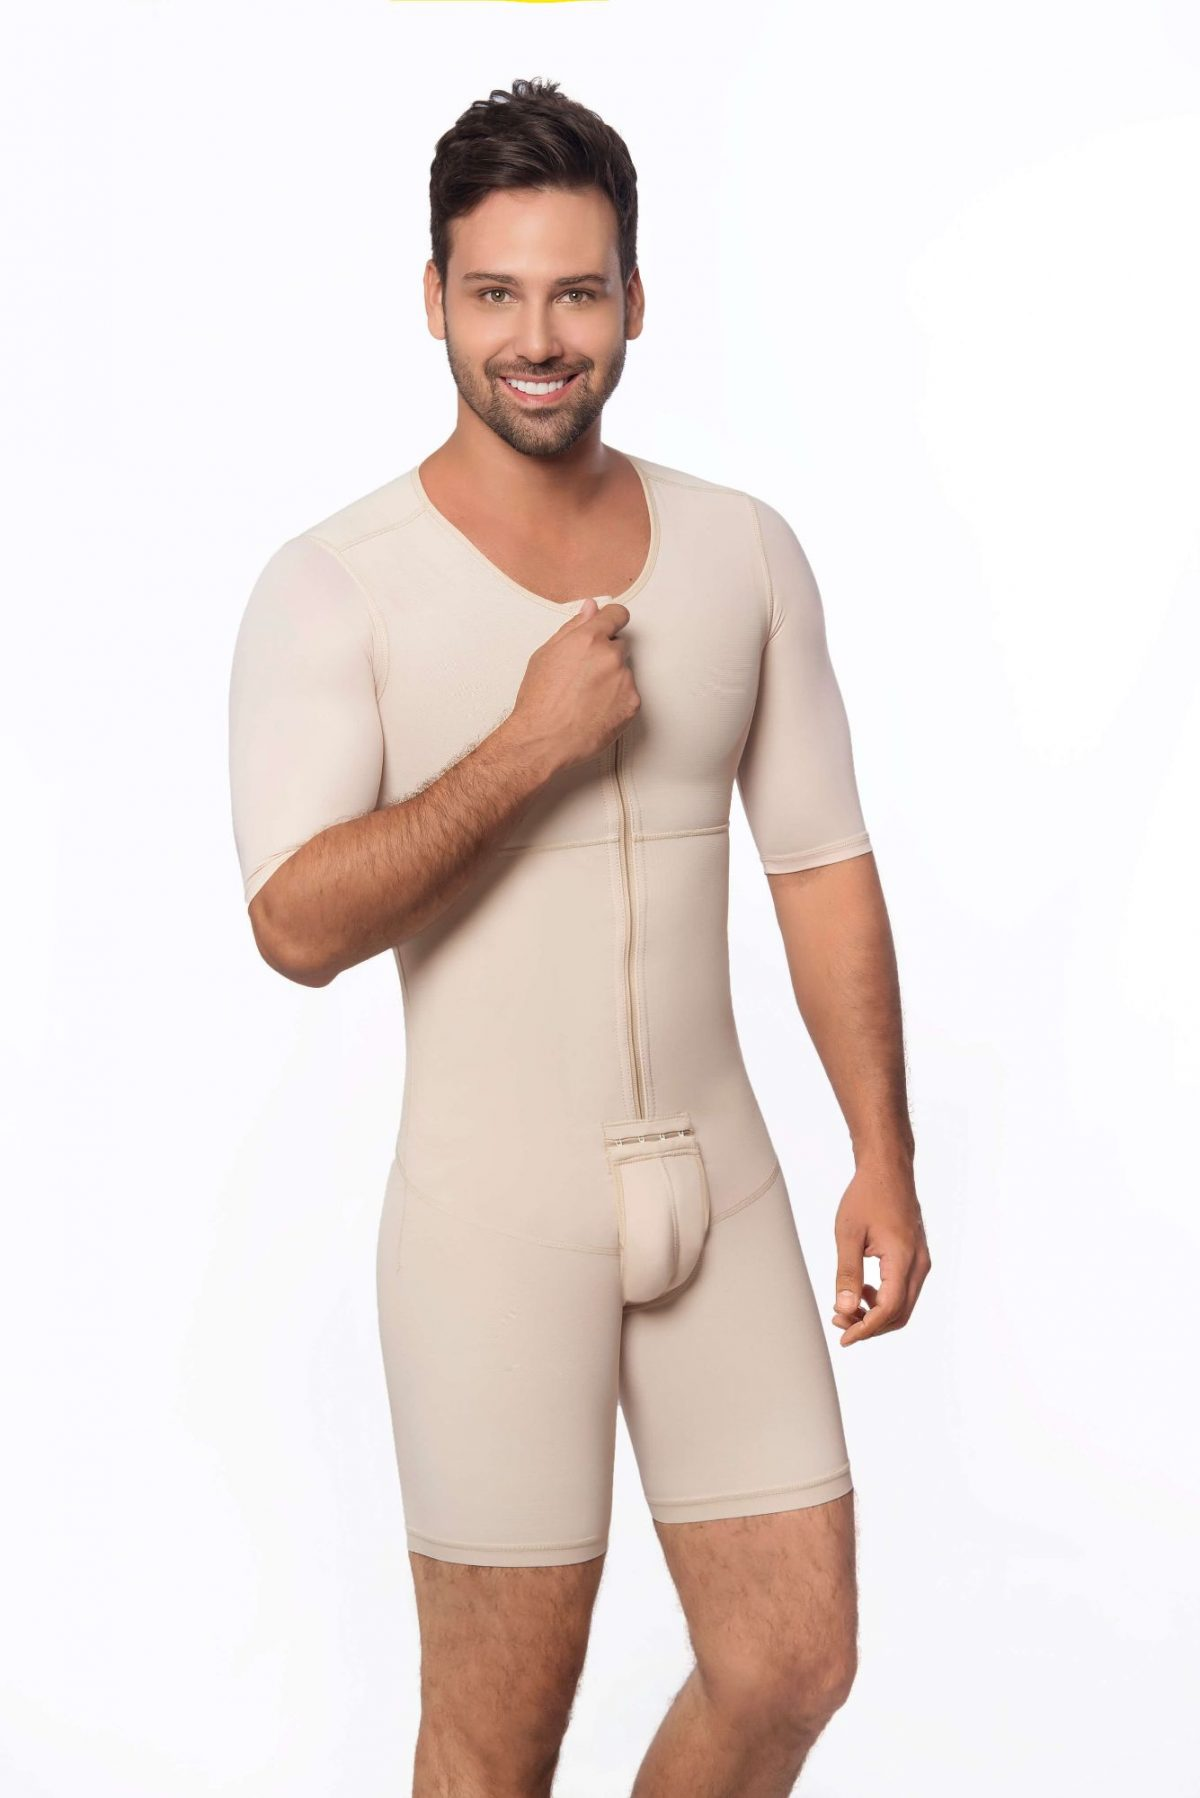 bd8b35817b Male full body mid thigh faja with sleeves - Contour Fajas